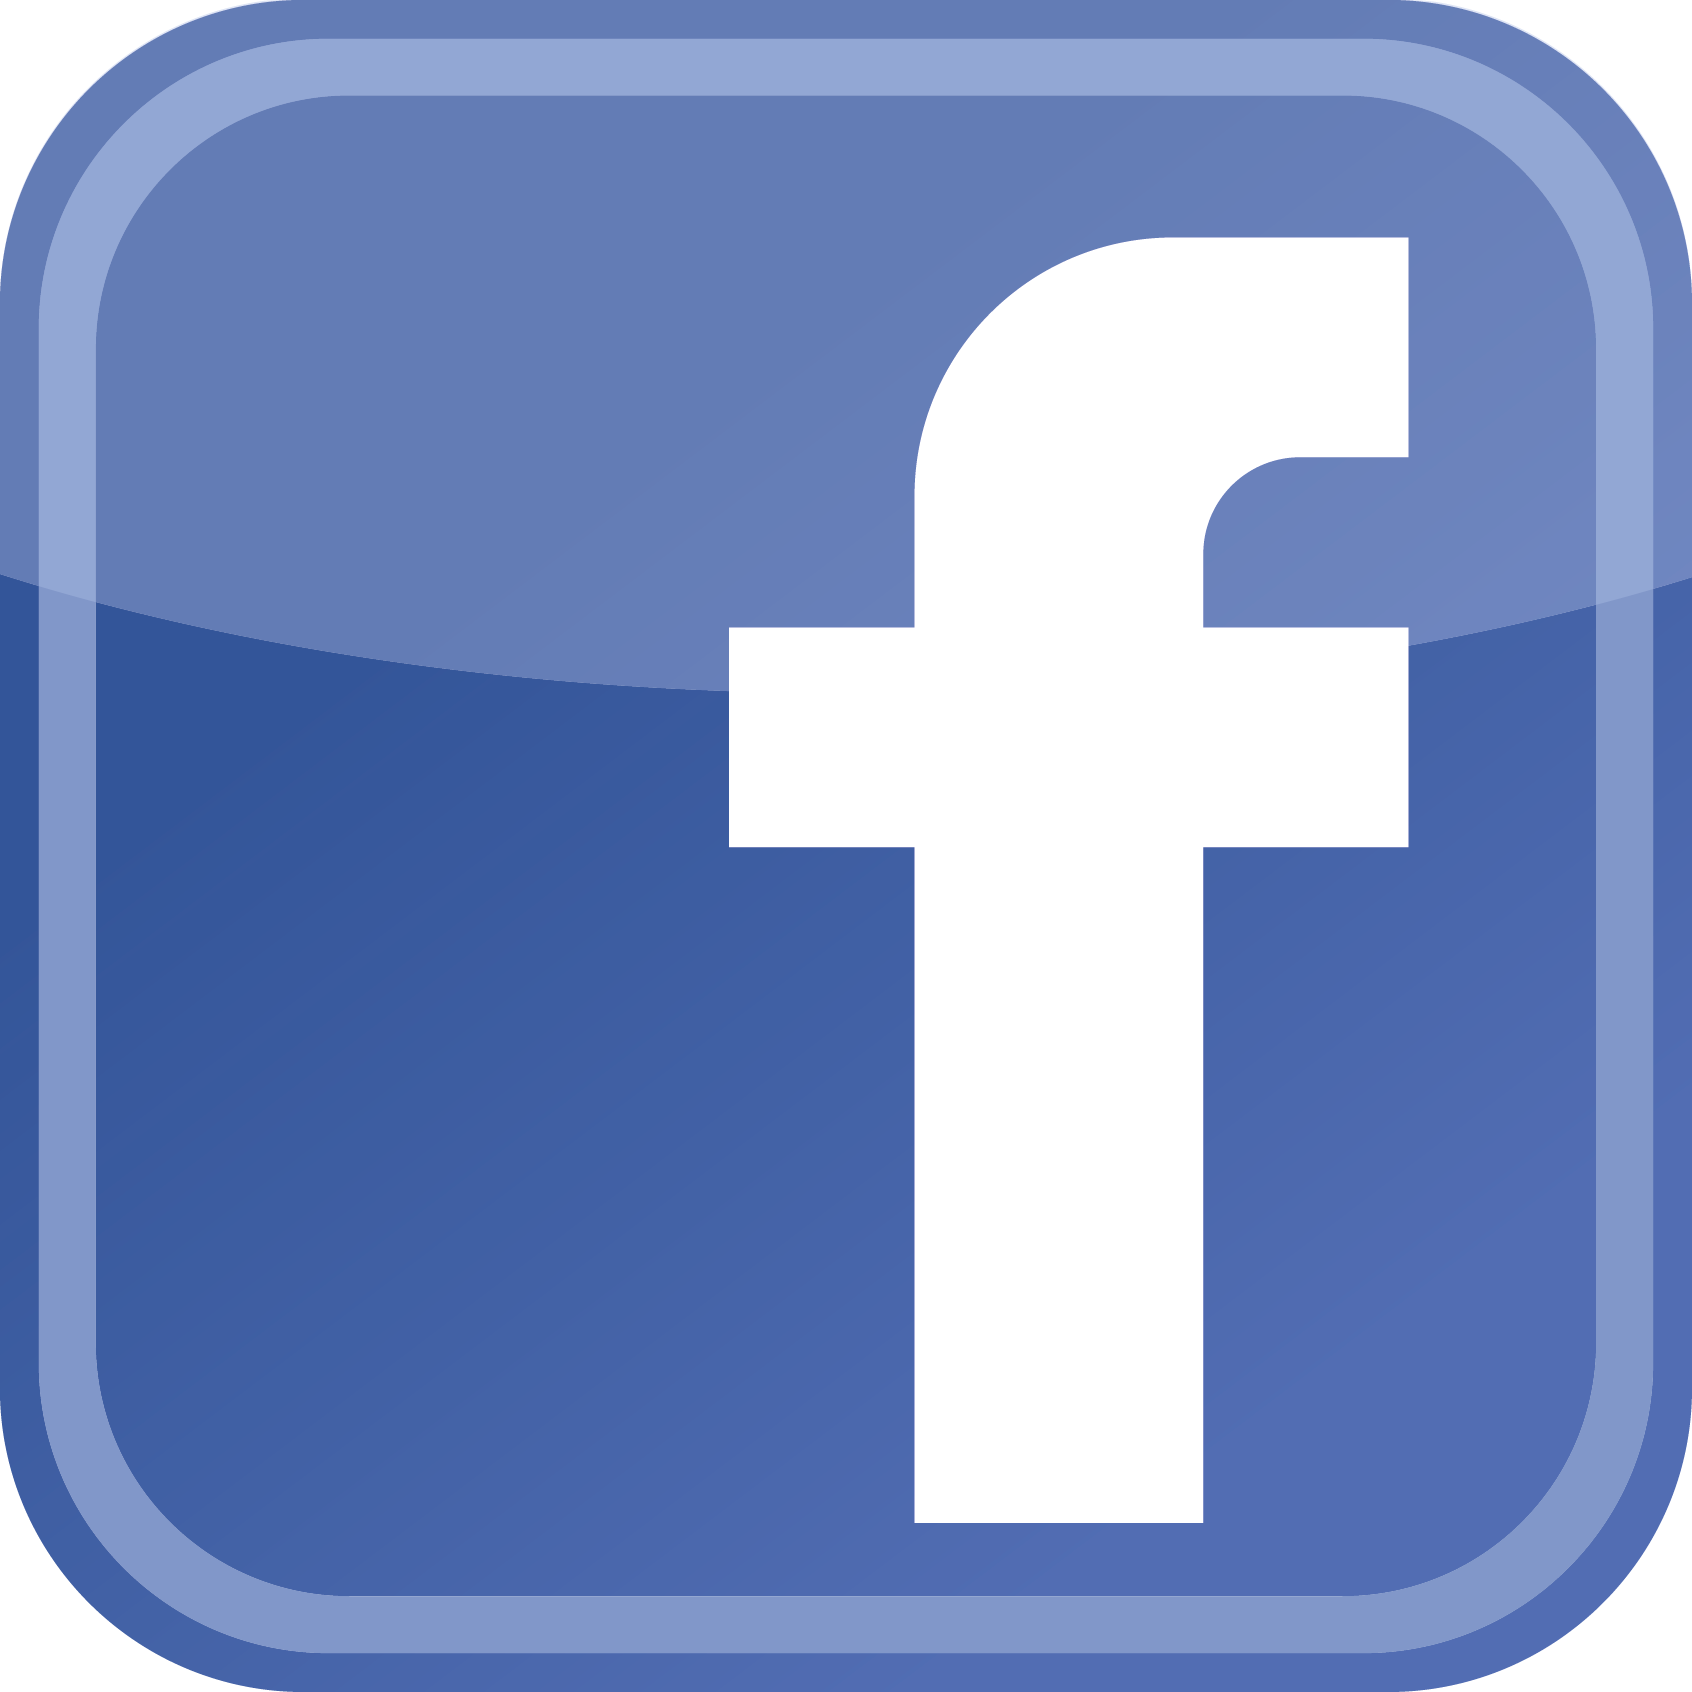 Facebook-LARGE-FOR-VECTOR-CONVERT